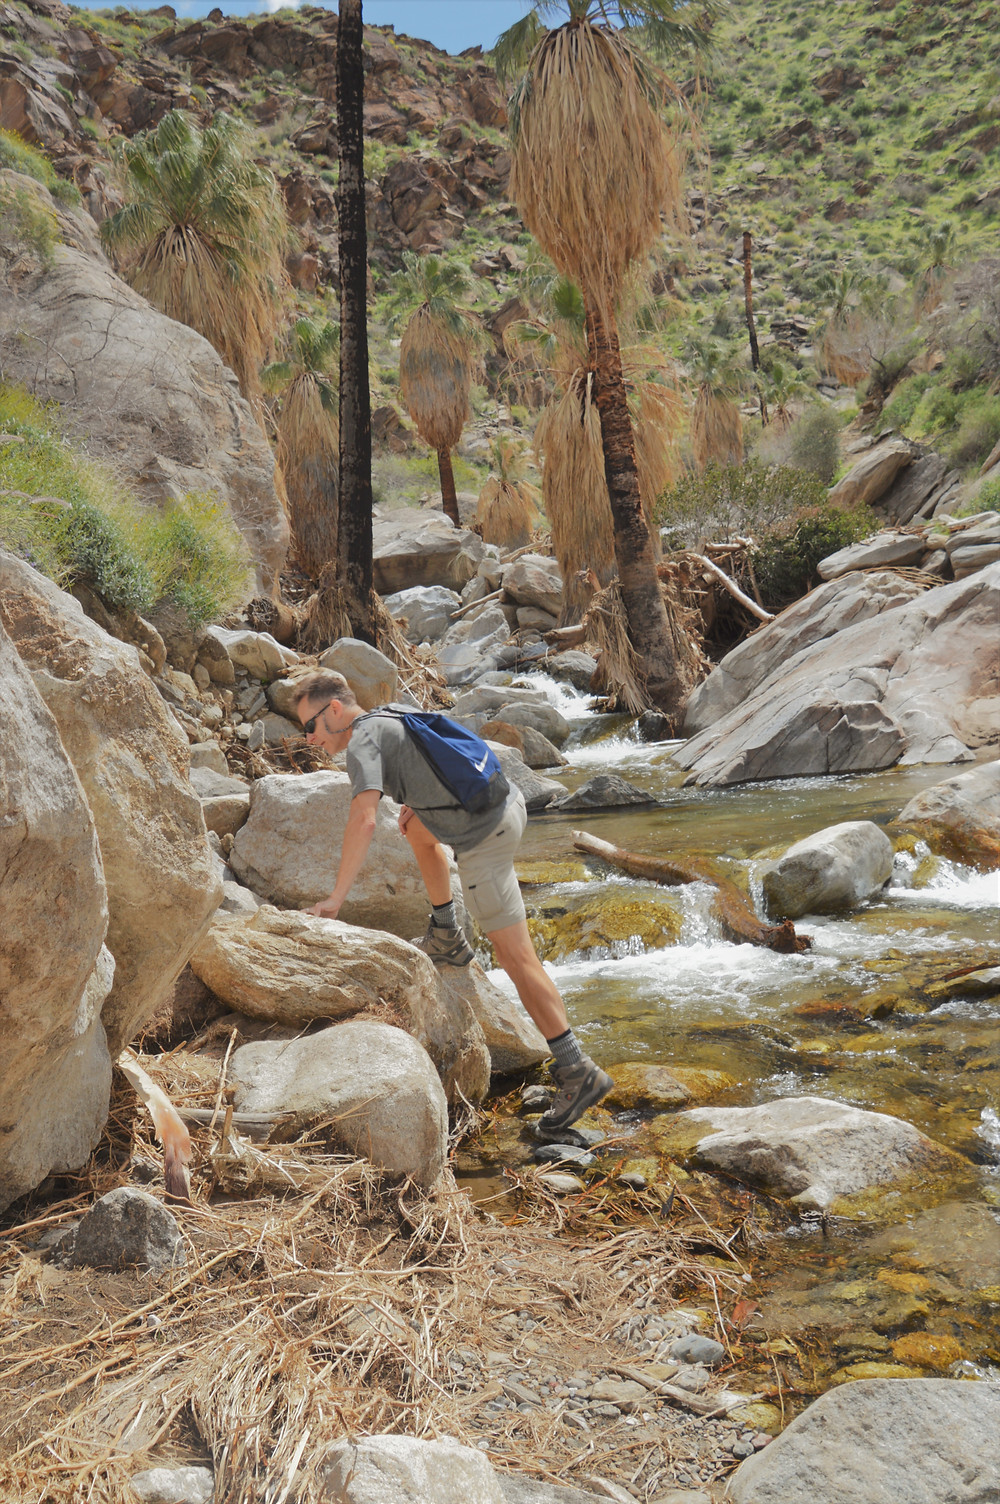 Hiking Murray Canyon in Agua Caliente Reservation winds up into the crevices of San Jacinto Mountains